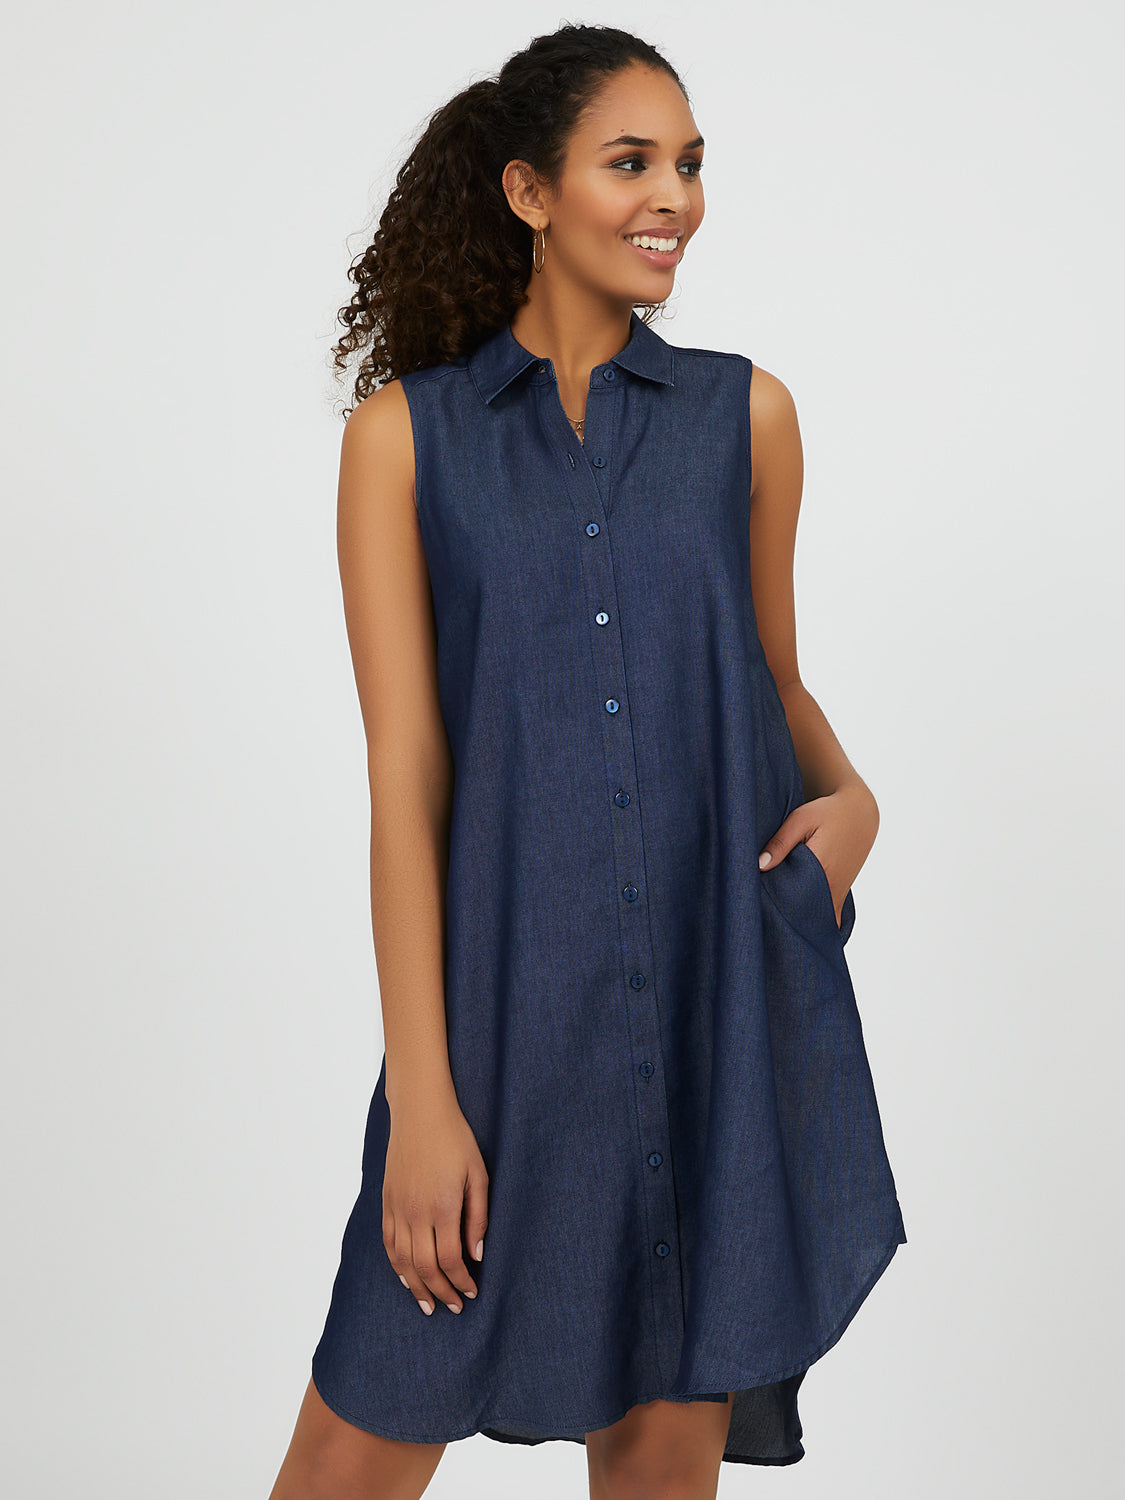 Sleeveless A-line Denim Shirt Dress